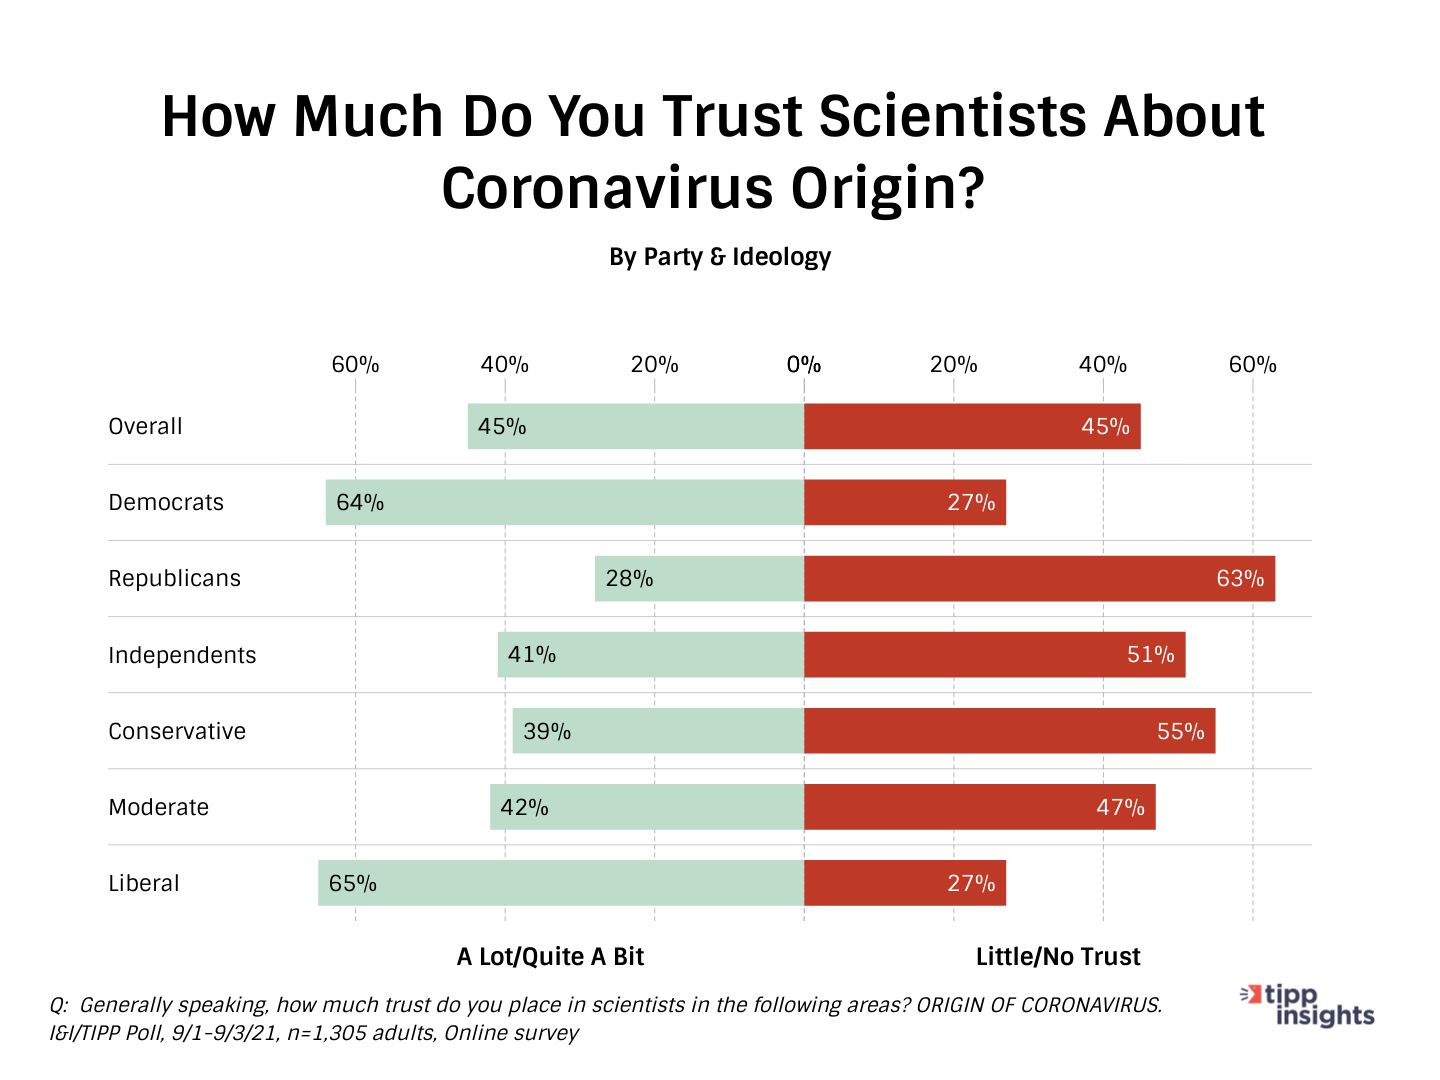 I&I/TIPP Poll Asking americans how much trust do they have towards scientists and the Coronavirus Origin